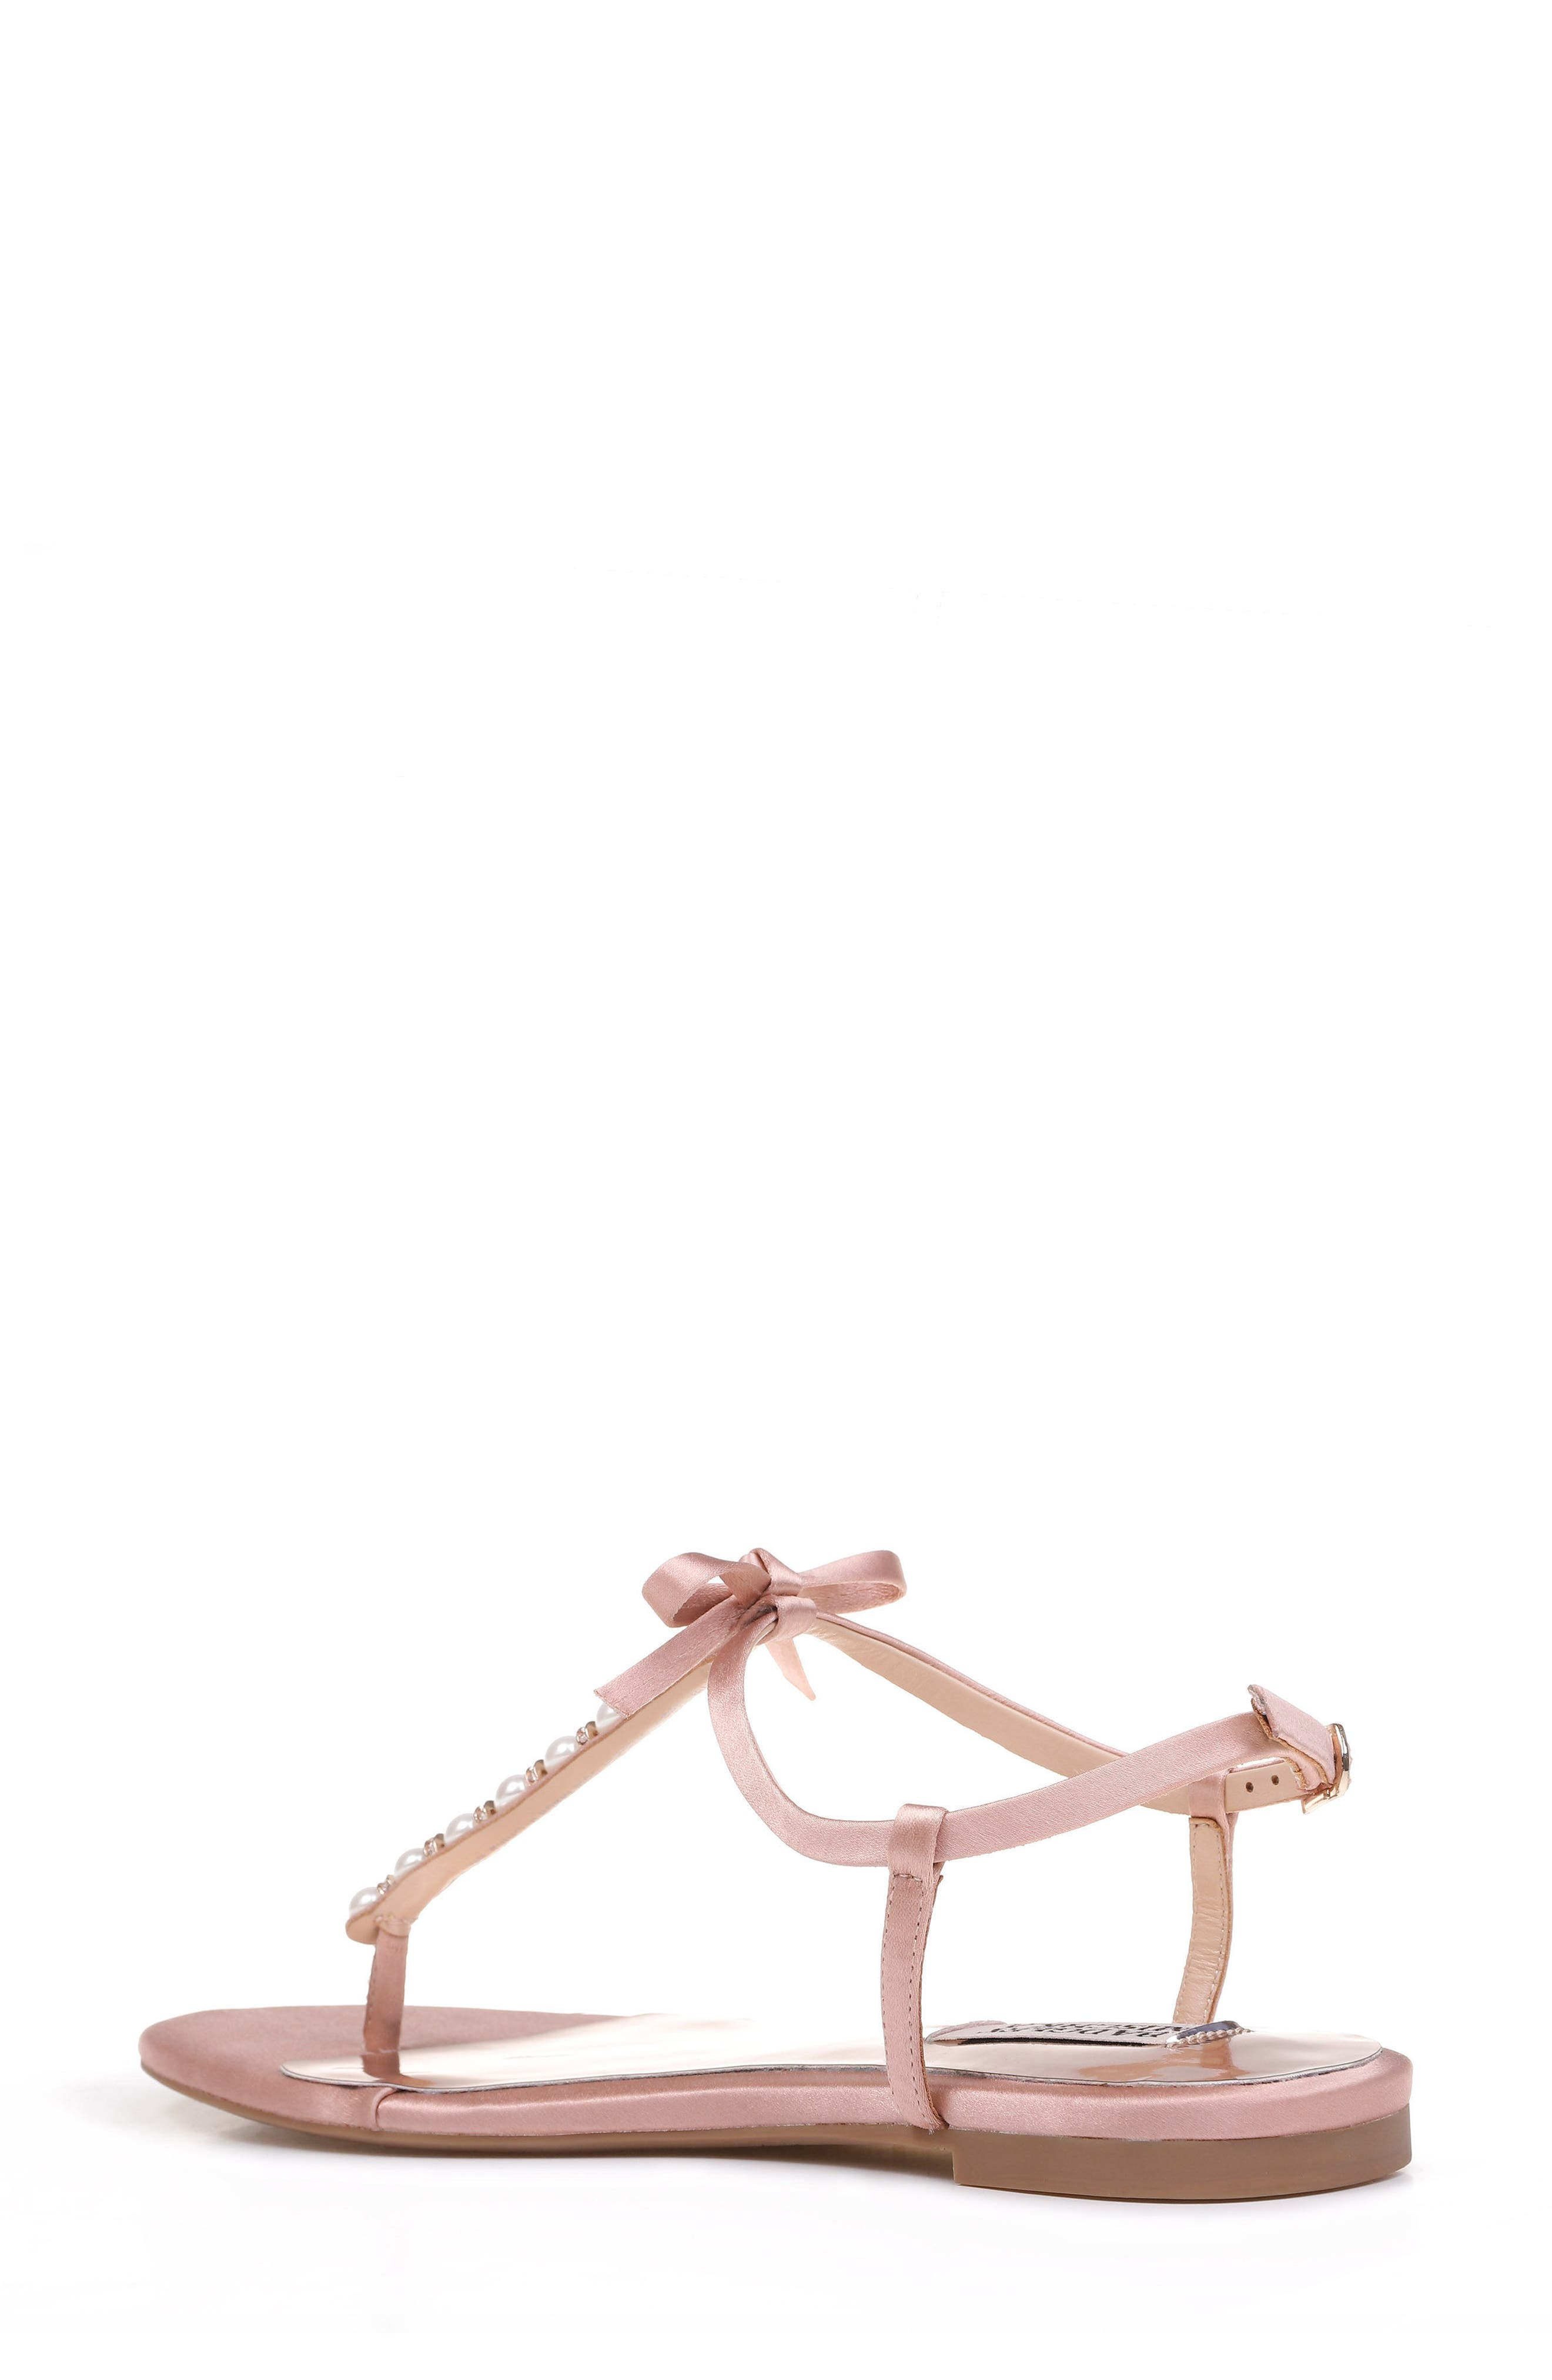 Honey Embellished Sandal,                             Alternate thumbnail 2, color,                             Dark Pink Satin